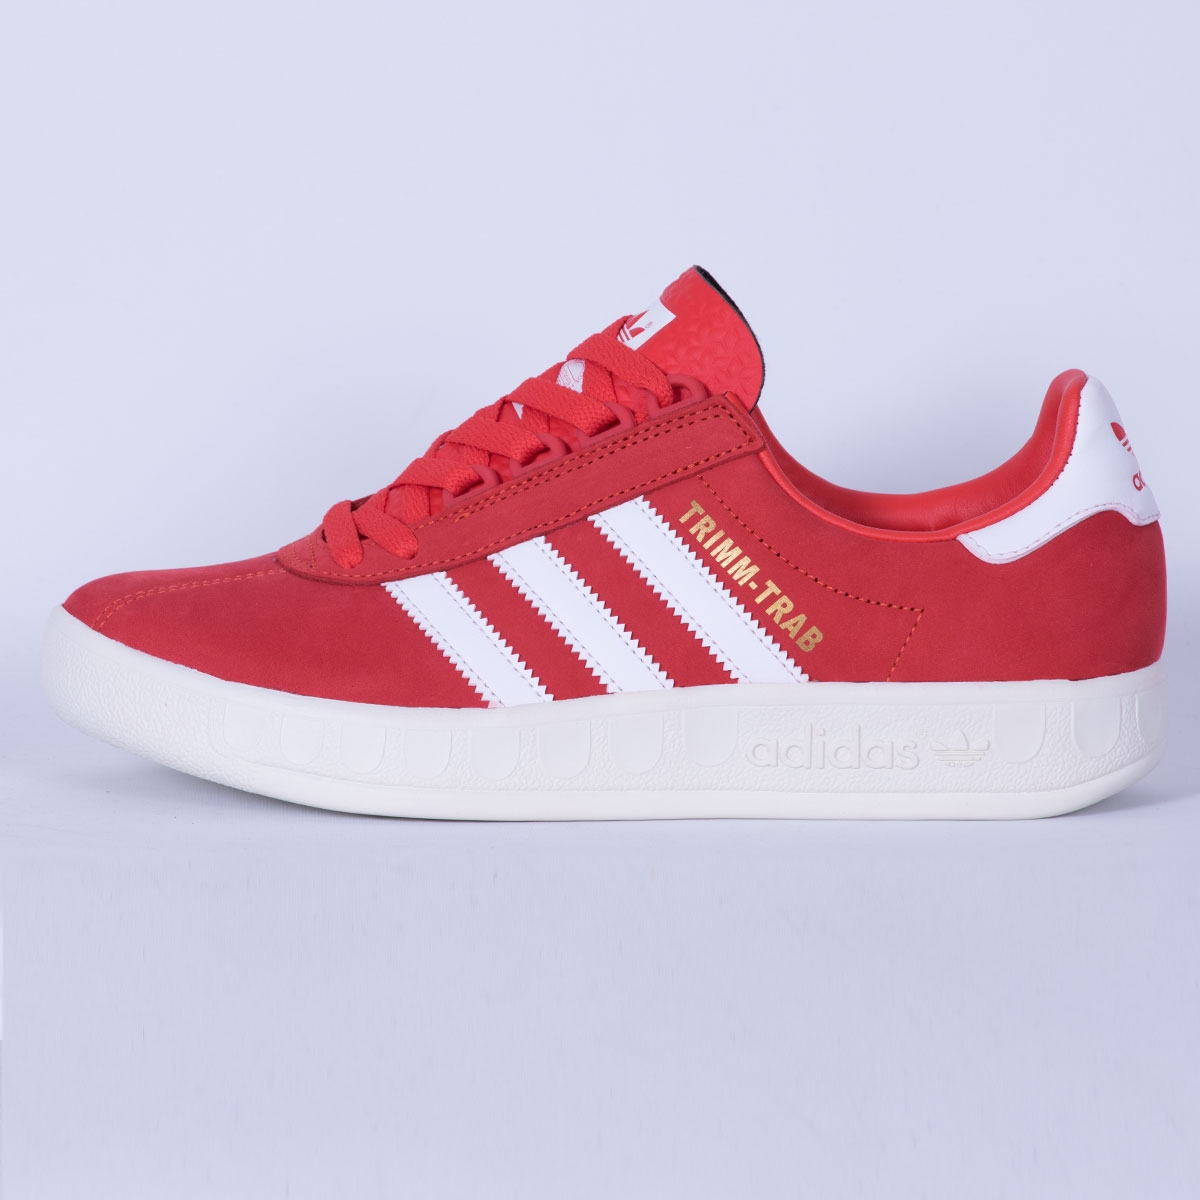 Adidas trainers pay homage to Liverpool